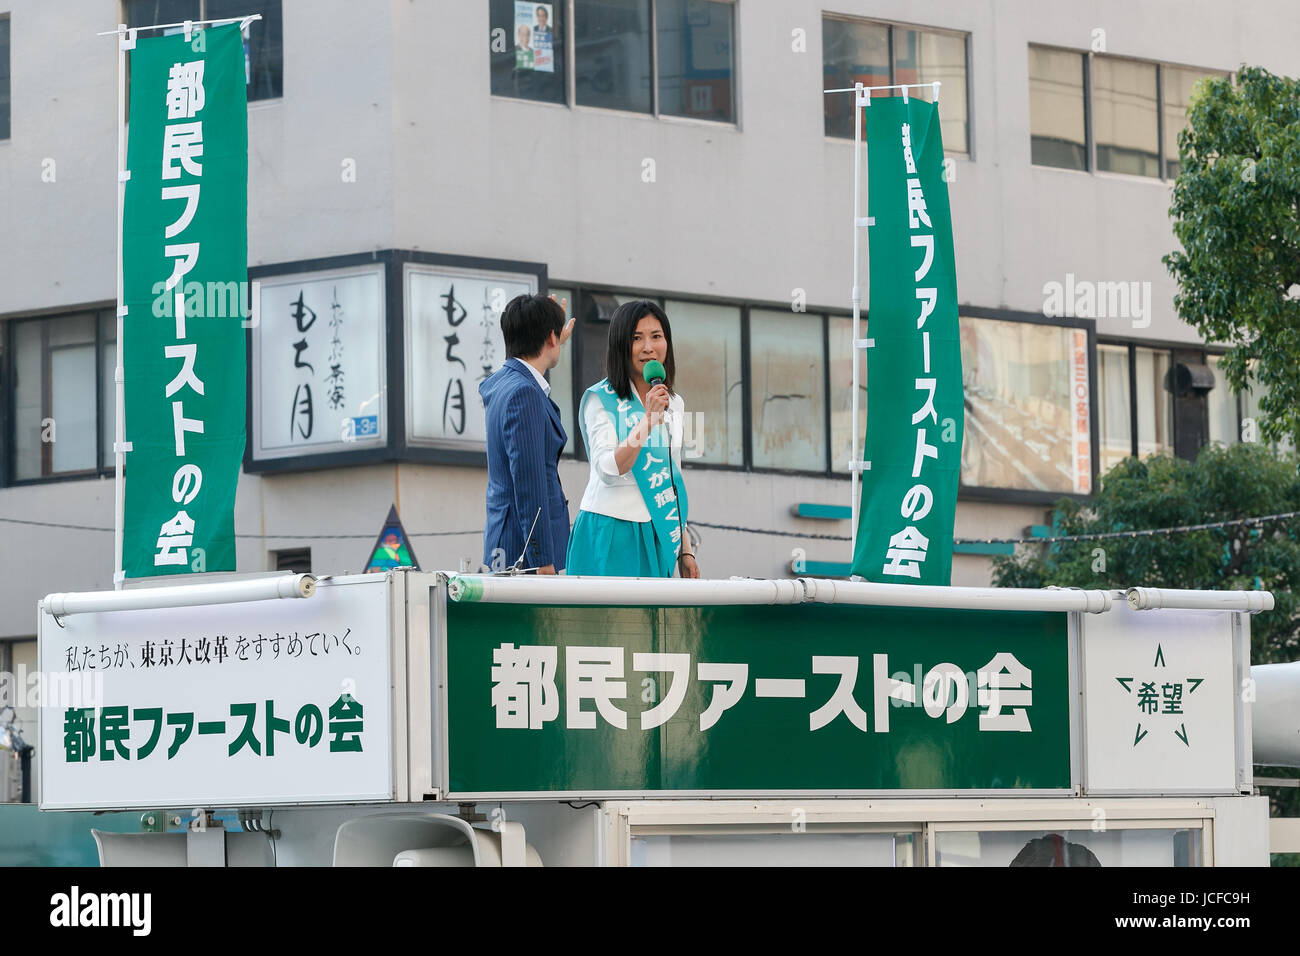 Tokyo, Japan. 16th June, 2017. Candidate Ai Mori delivers a street speech while campaigning for Tokyo's Metropolitan - Stock Image